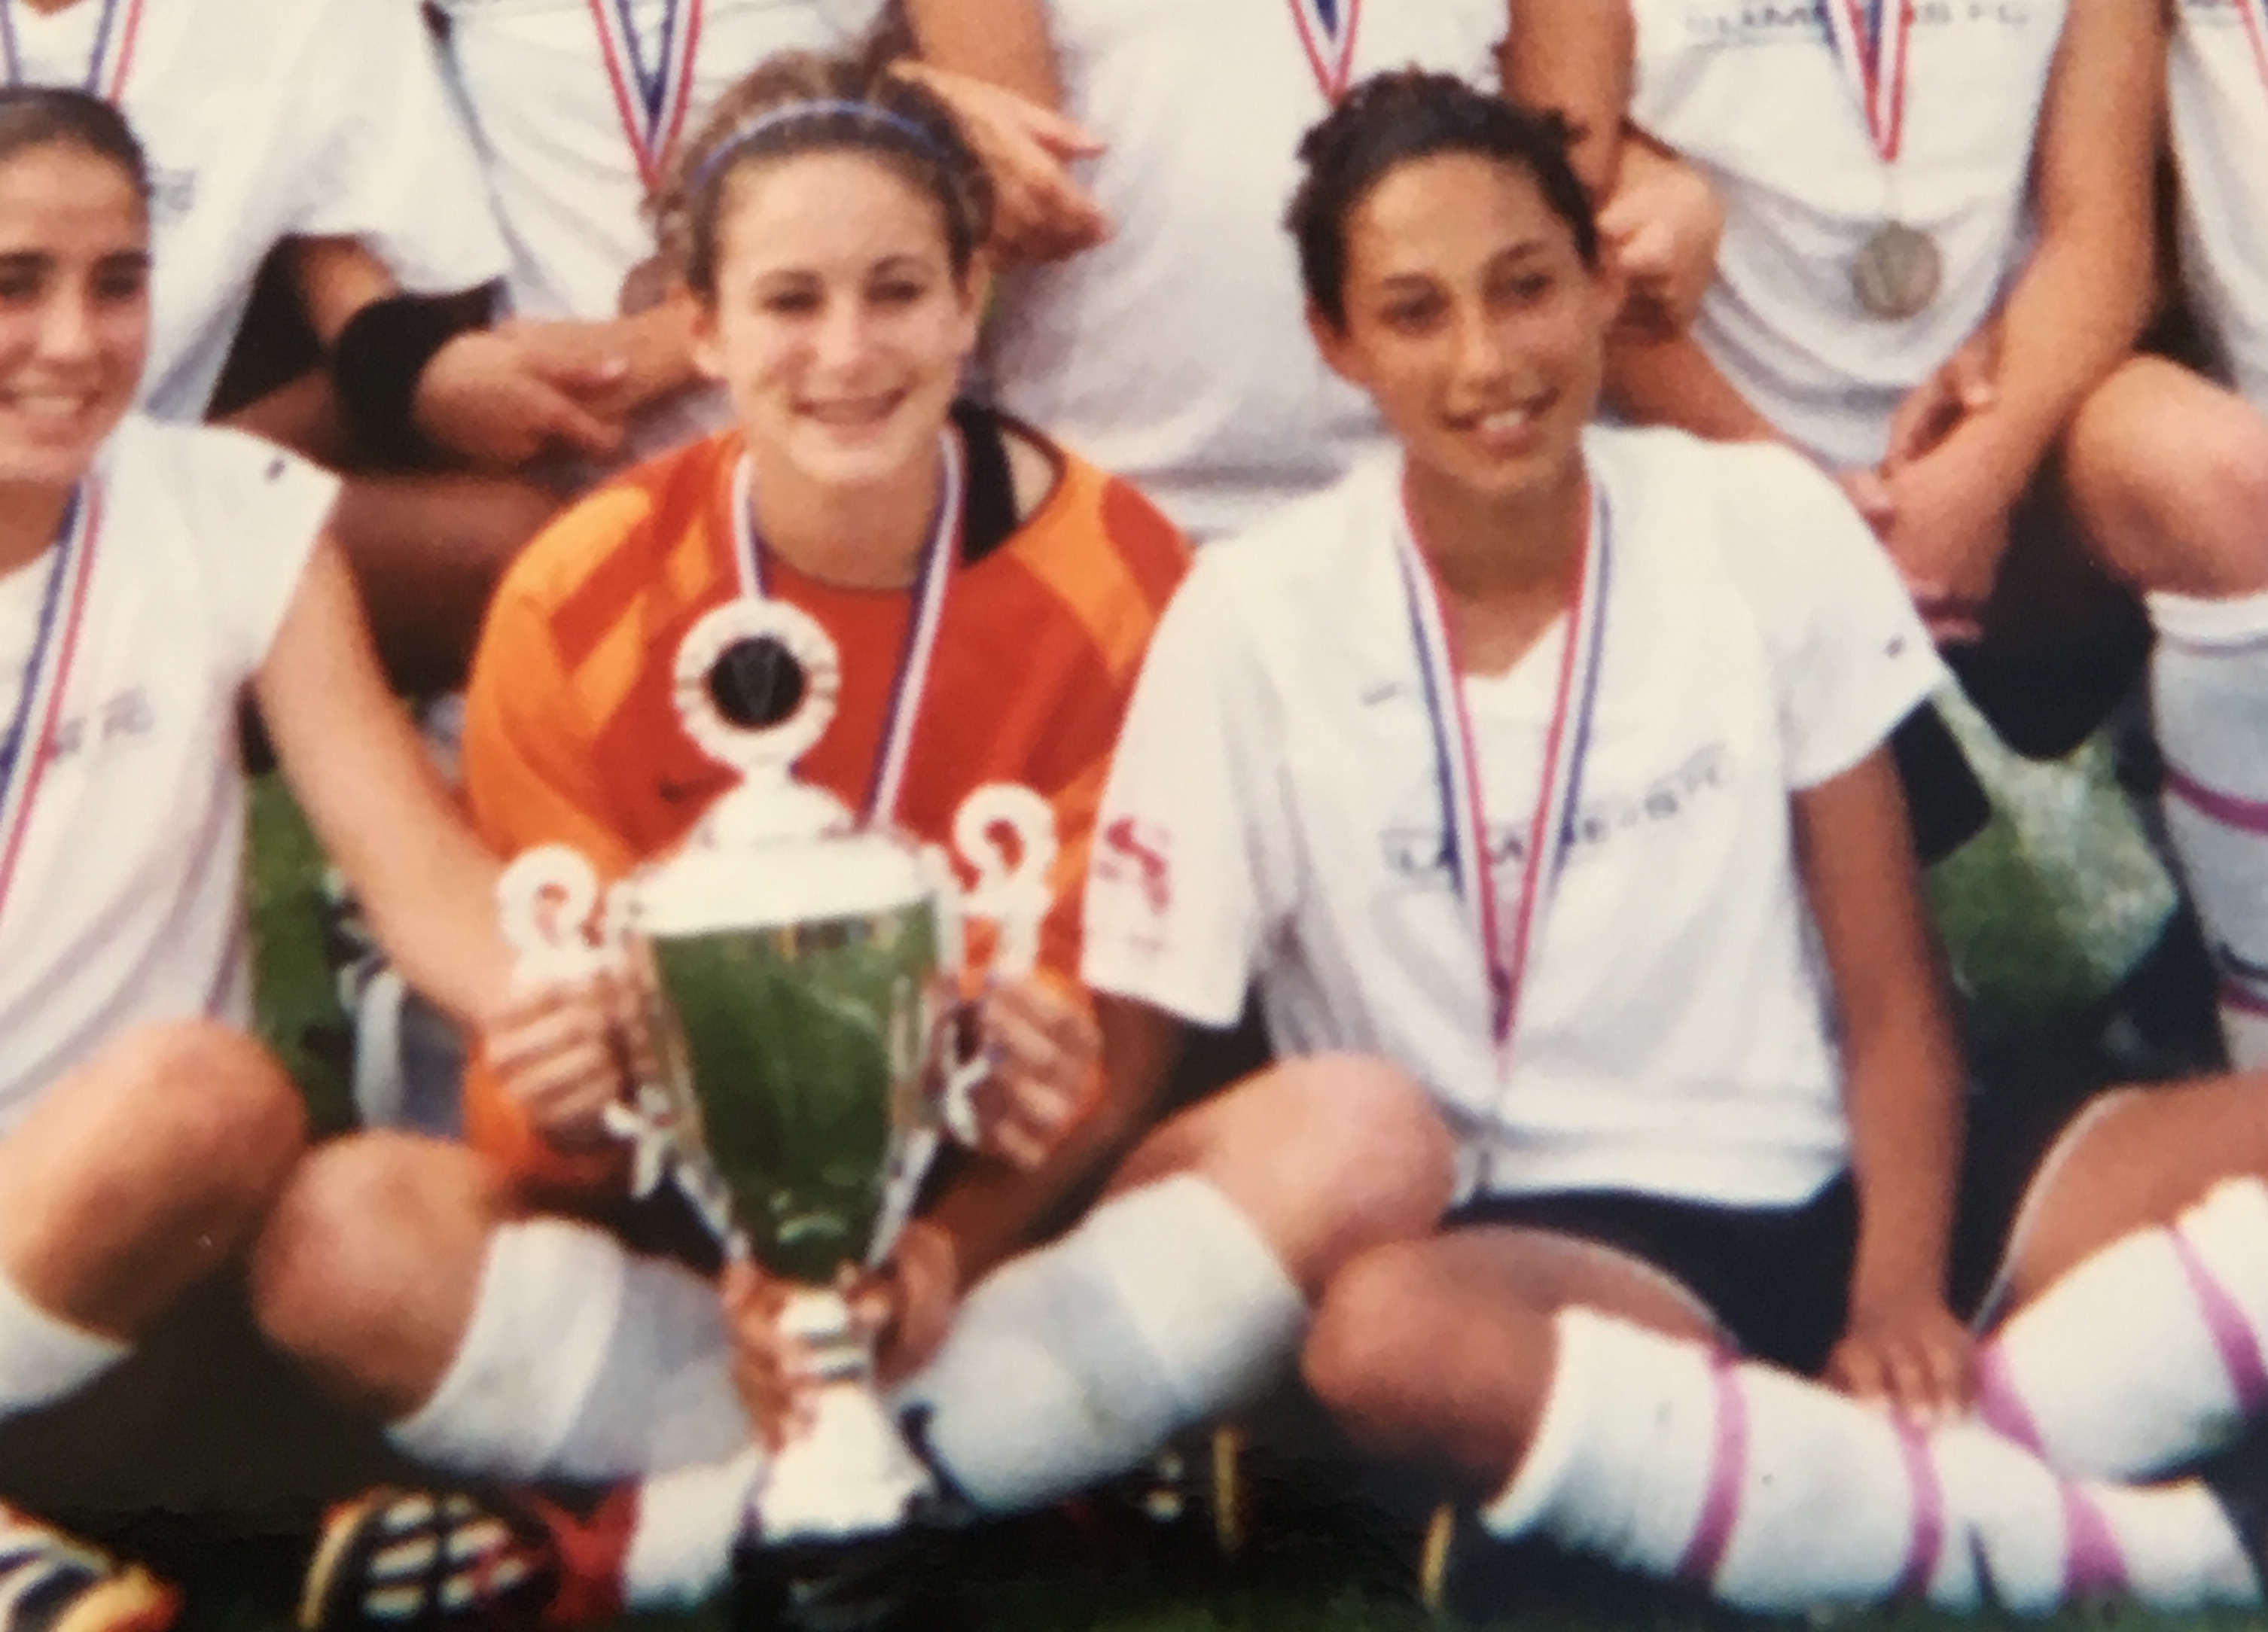 From SoCal to the World Cup: USWNT's Christen Press